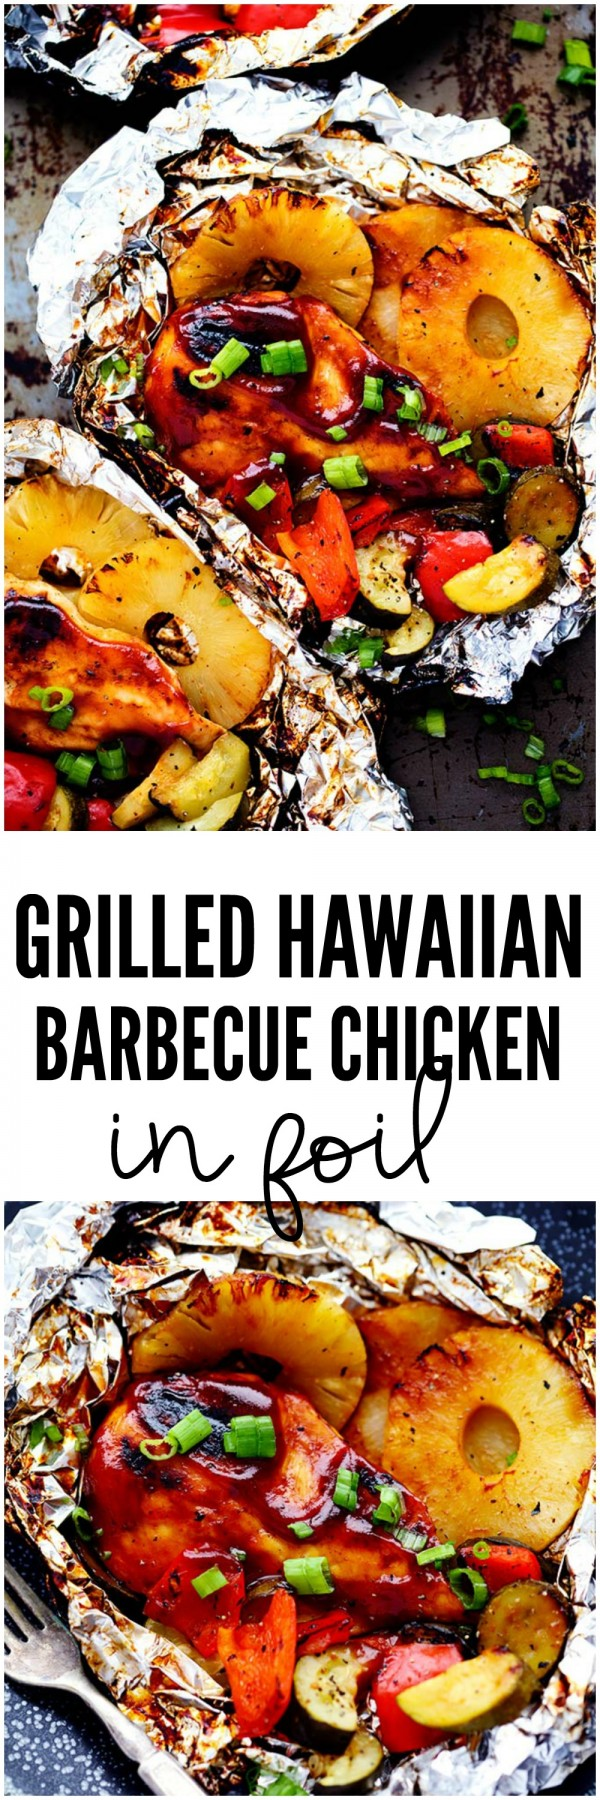 20 Unforgettable Chicken Recipes for a Romantic Dinner for Two - Get the recipe Grilled Hawaiian Barbecue Chicken @recipes_to_go